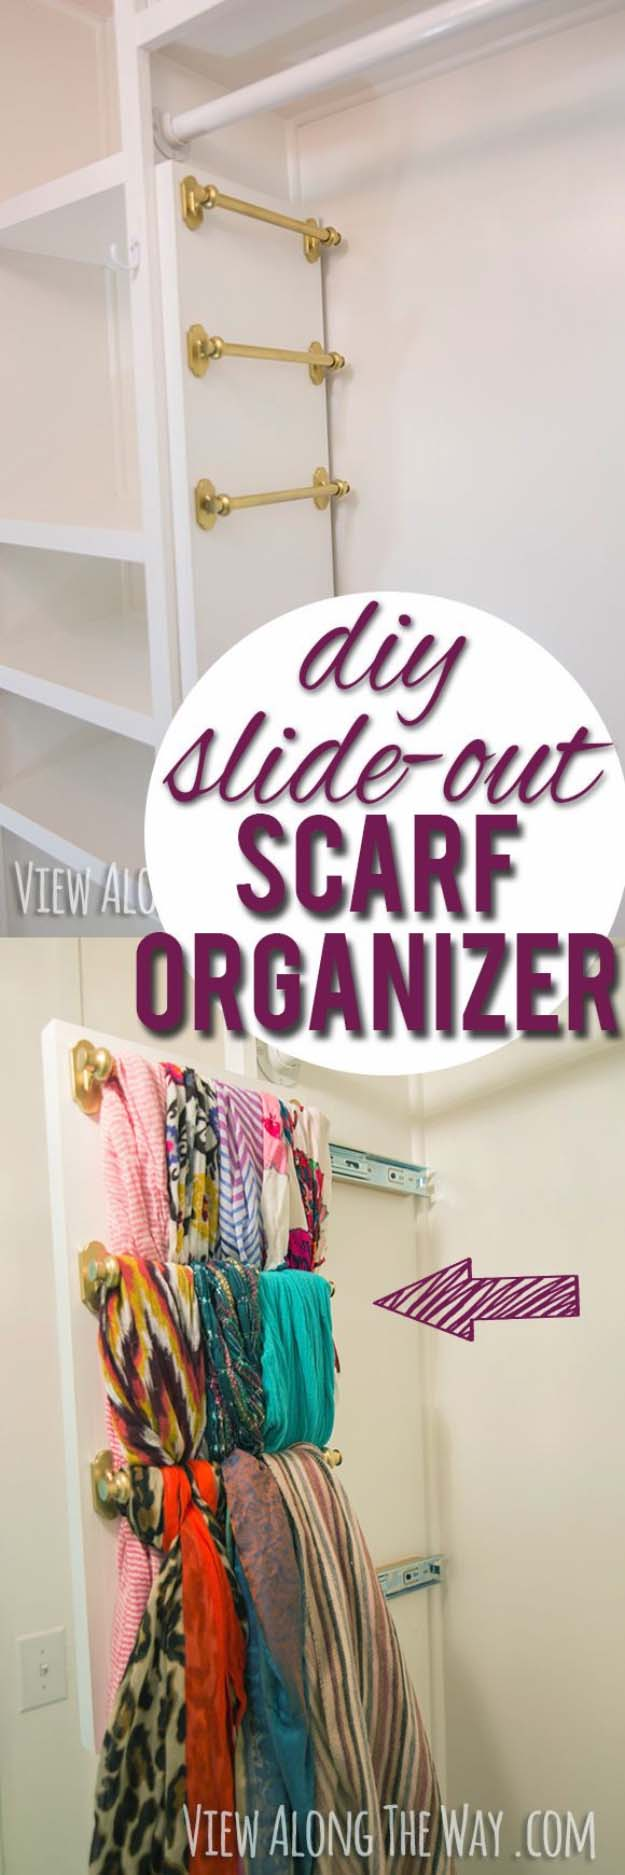 DIY Closet Organization Ideas for Messy Closets and Small Spaces. Organizing Hacks and Homemade Shelving And Storage Tips for Garage, Pantry, Bedroom., Clothes and Kitchen | DIY slide-out scarf and belt organizers #organizing #closets #organizingideas